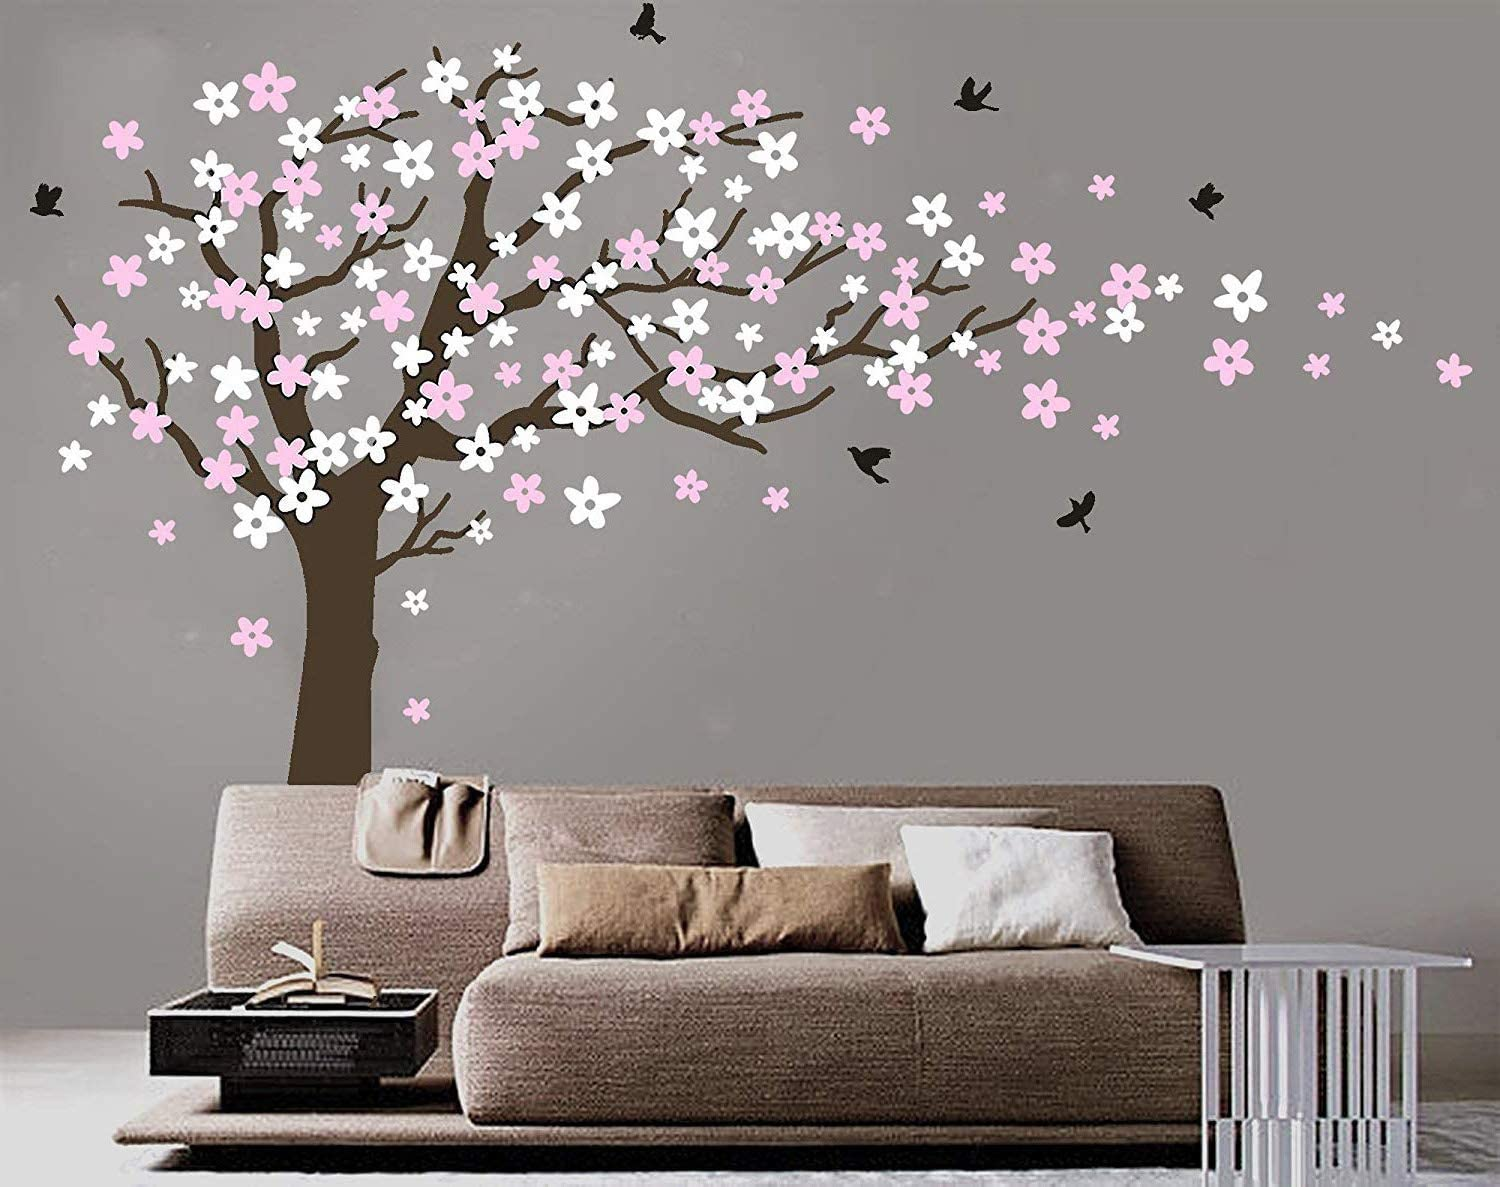 Amazon Com Mafent Large Cherry Blossom Tree Blowing In The Wind